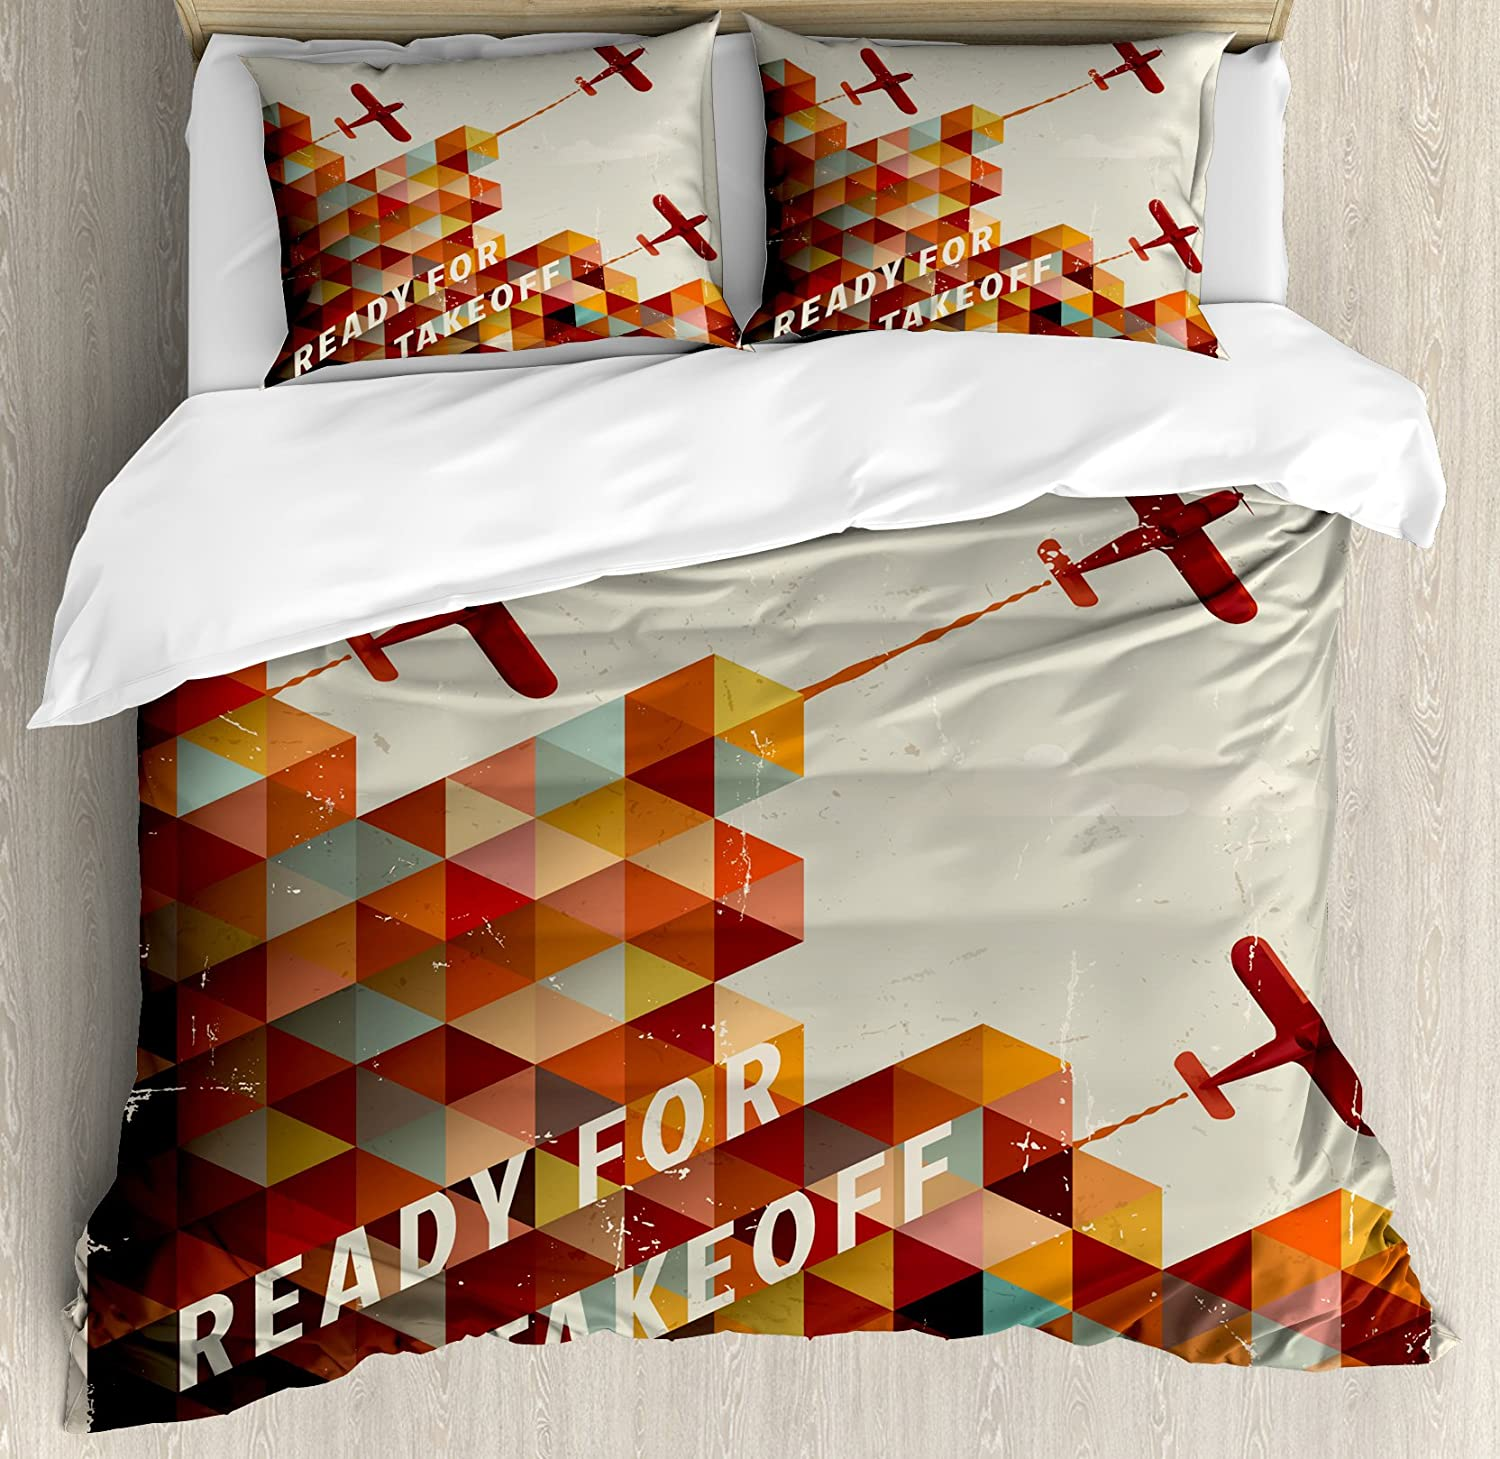 Ambesonne Vintage Airplane Duvet Cover Set, Ready for Take Off Retro Style Geometric Pattern Triangles Clouds Planes, Decorative 3 Piece Bedding Set with 2 Pillow Shams, Queen Size, Burnt Orange